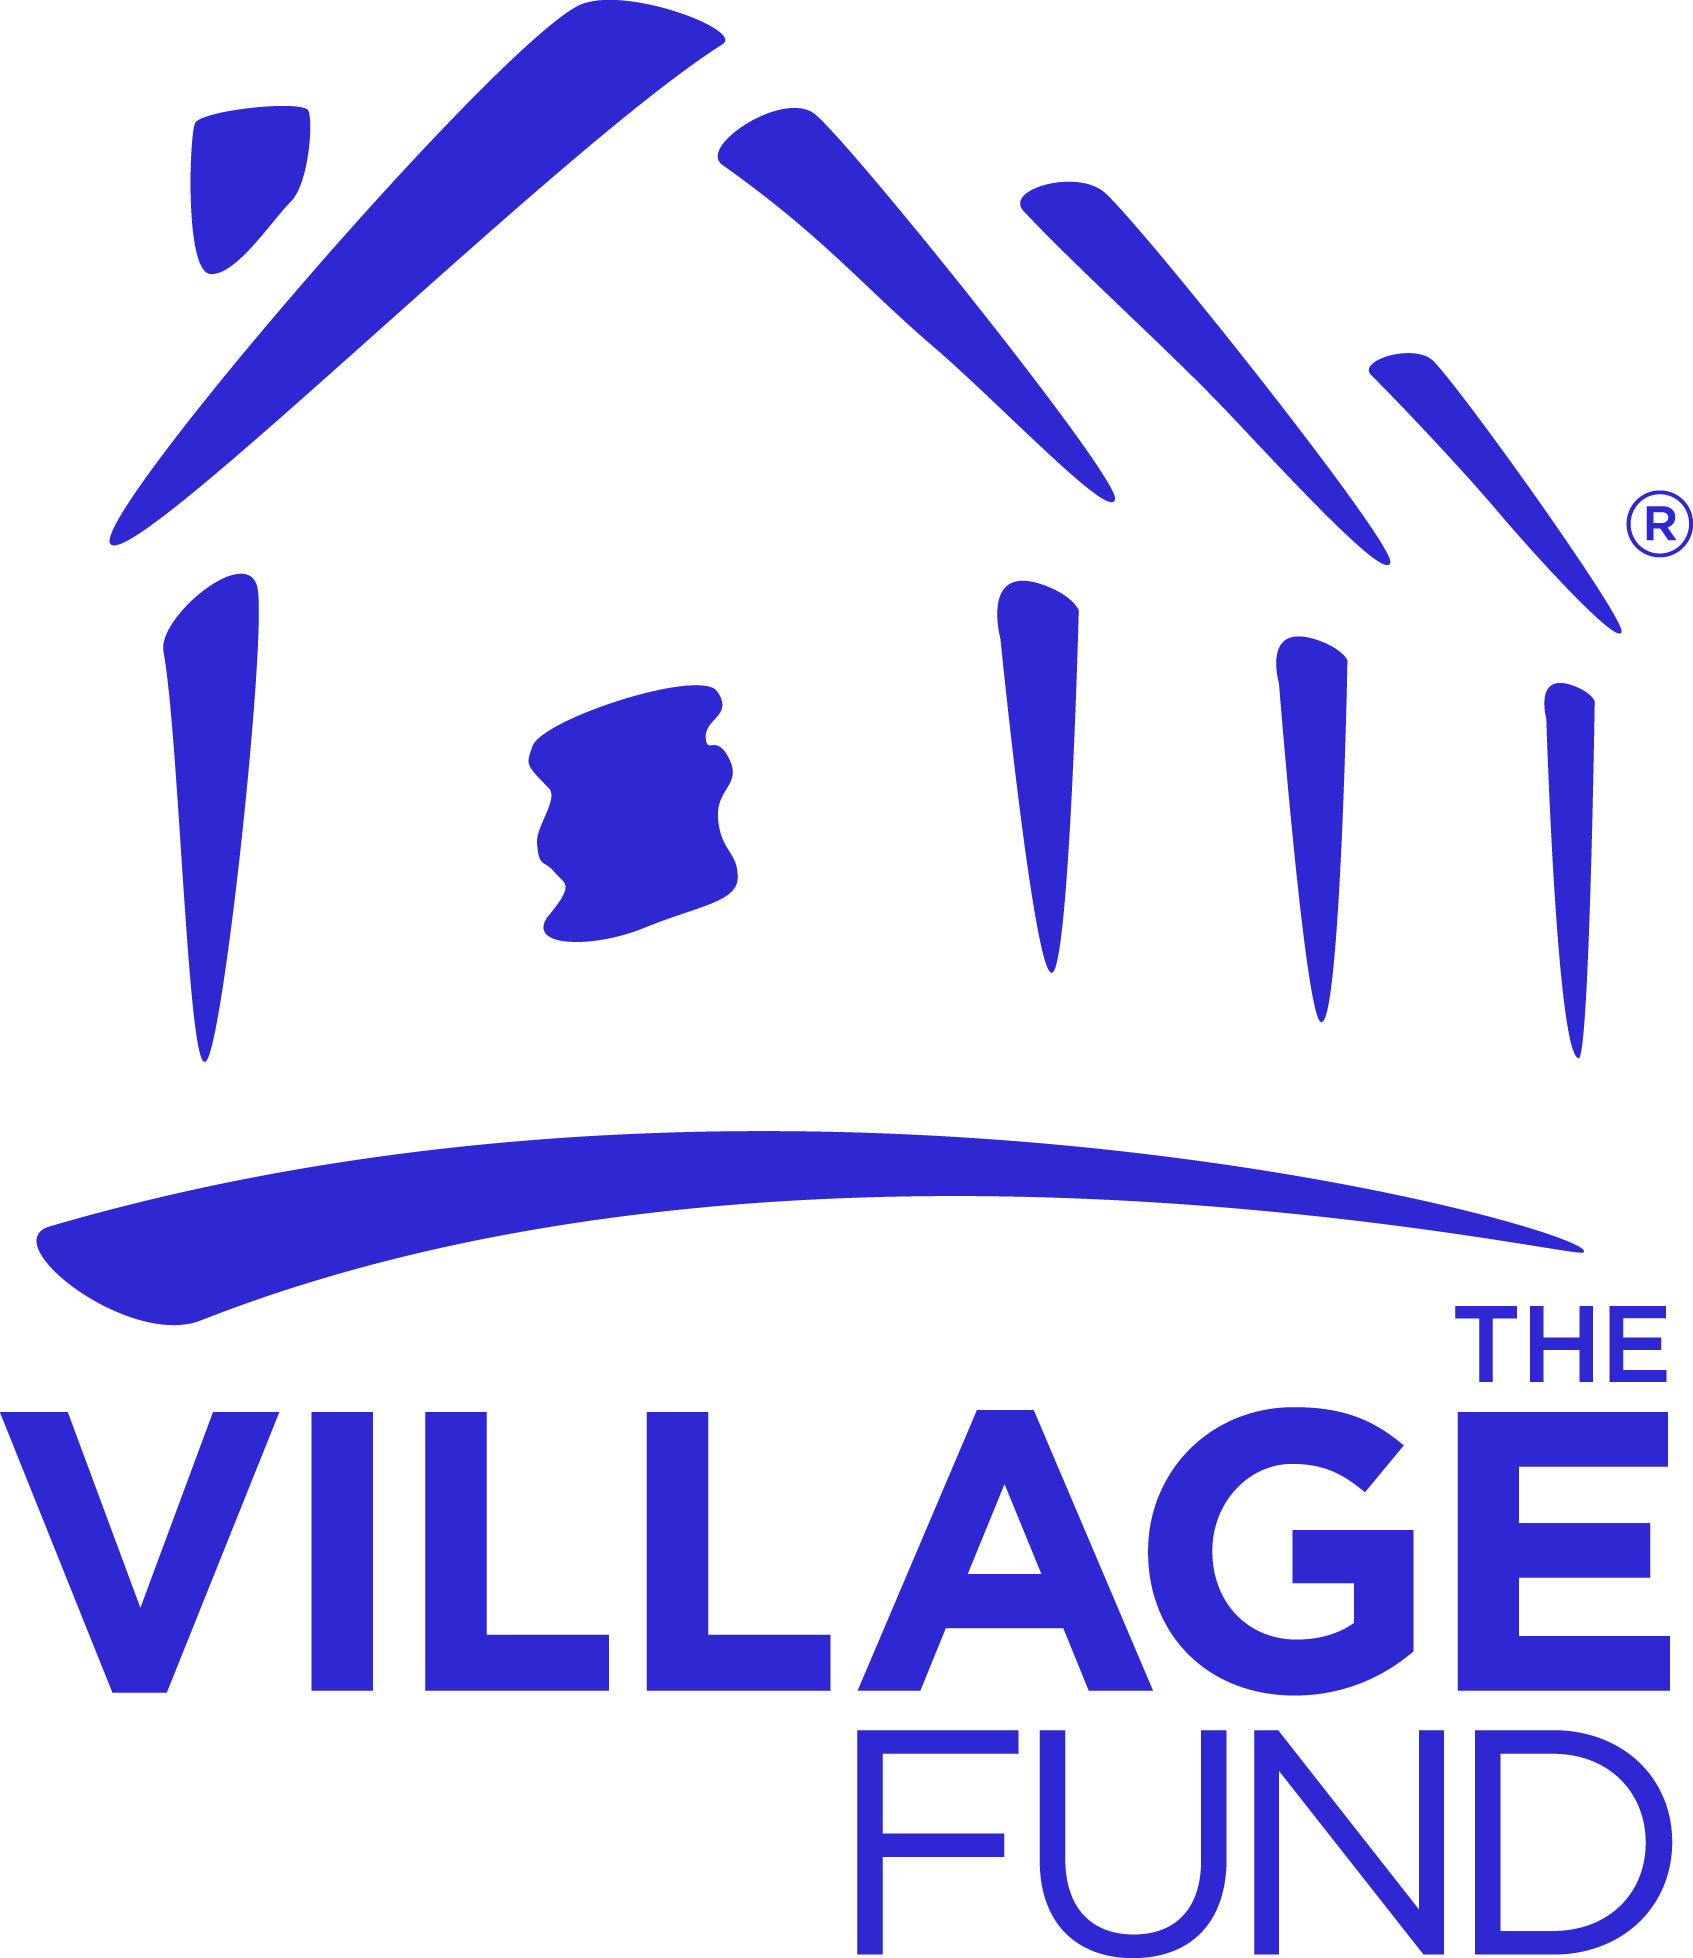 VillageFund.jpg